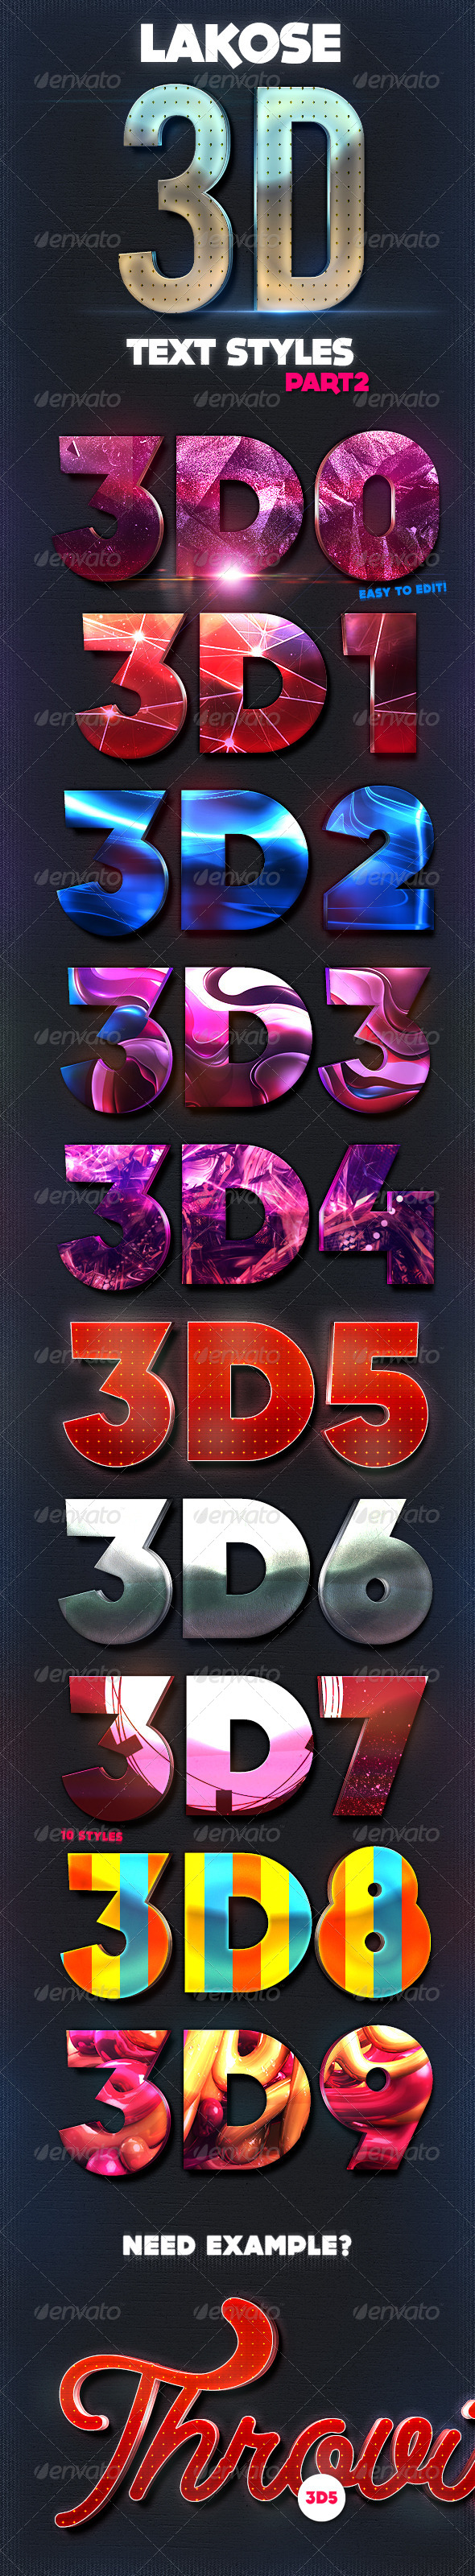 GraphicRiver Lakose 3D Text Styles Part 2 8340138